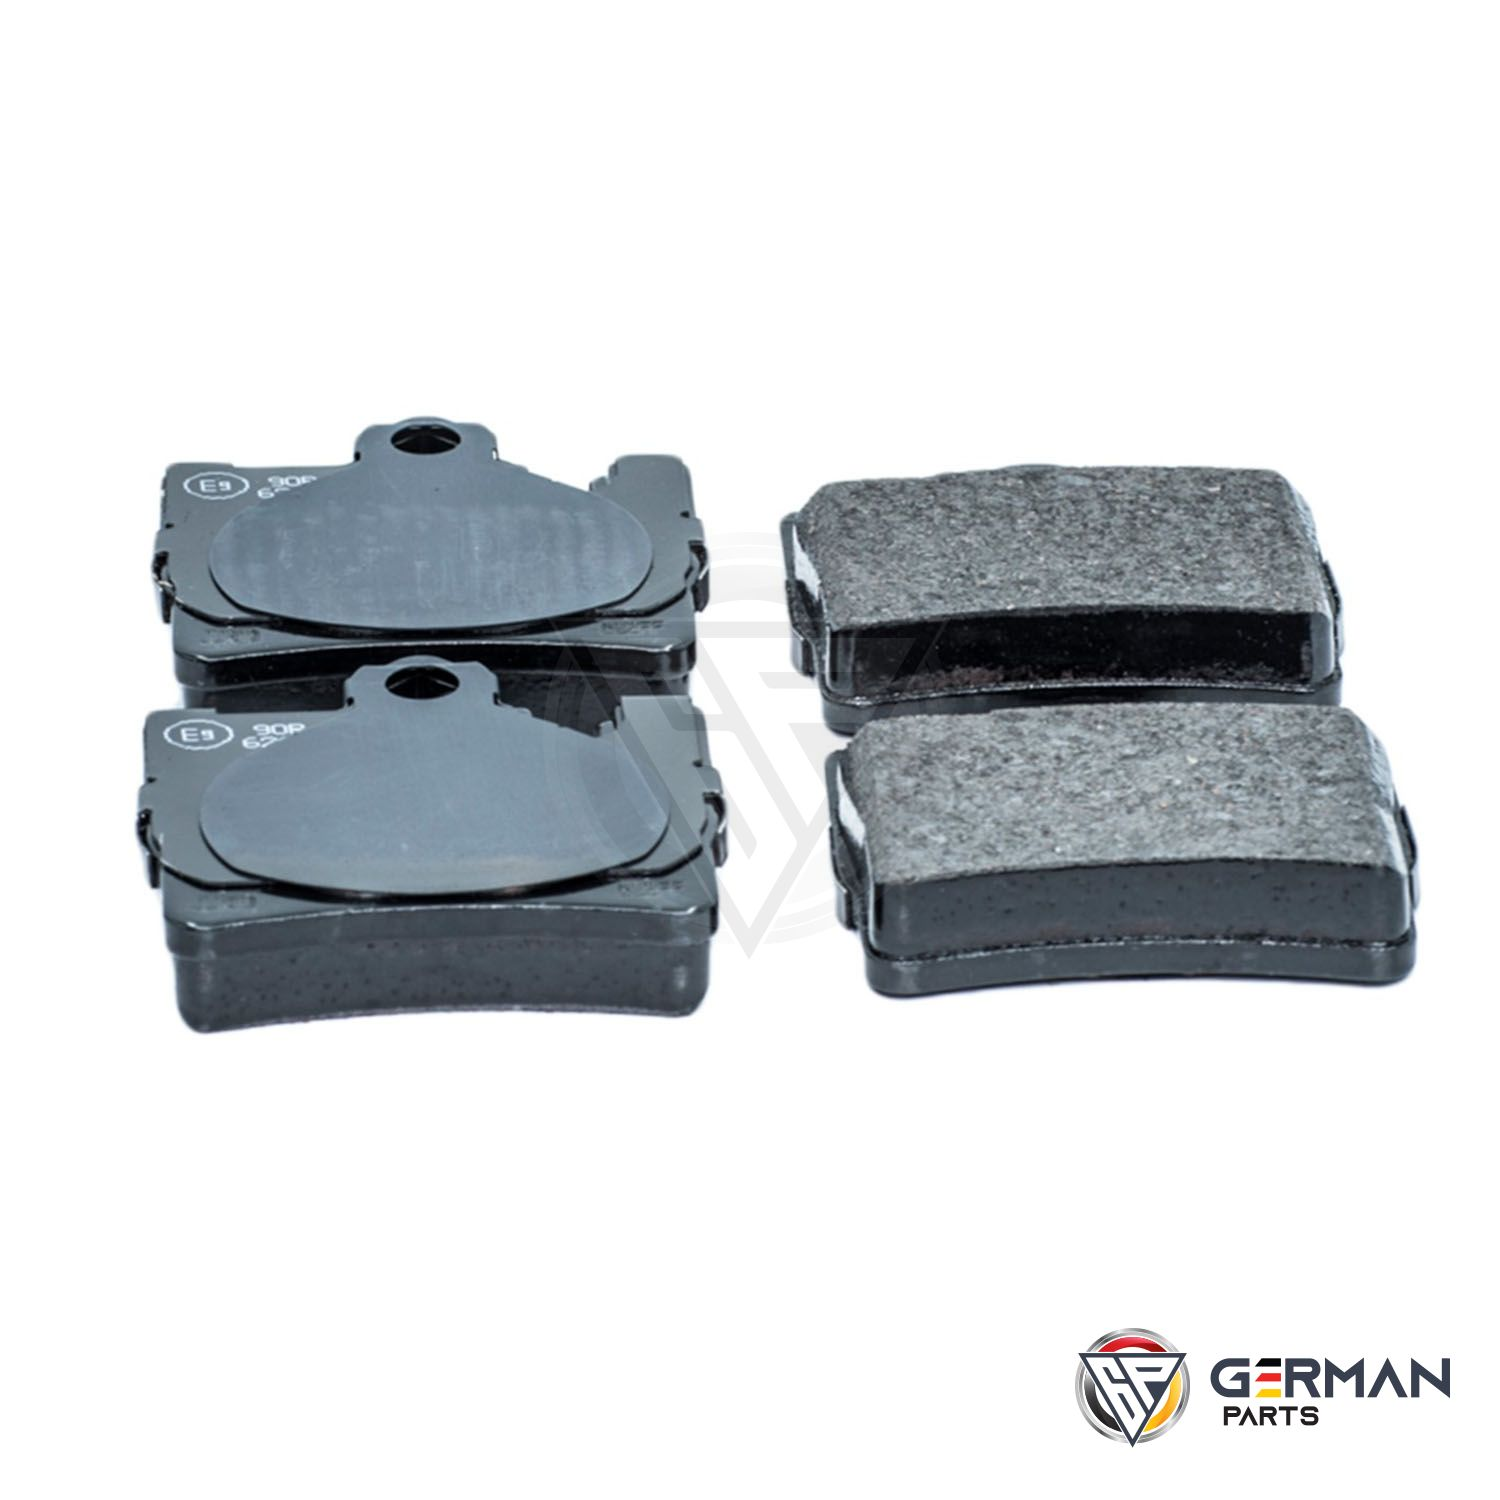 Buy Mercedes Benz Rear Brake Pad Set 0044209420 - German Parts